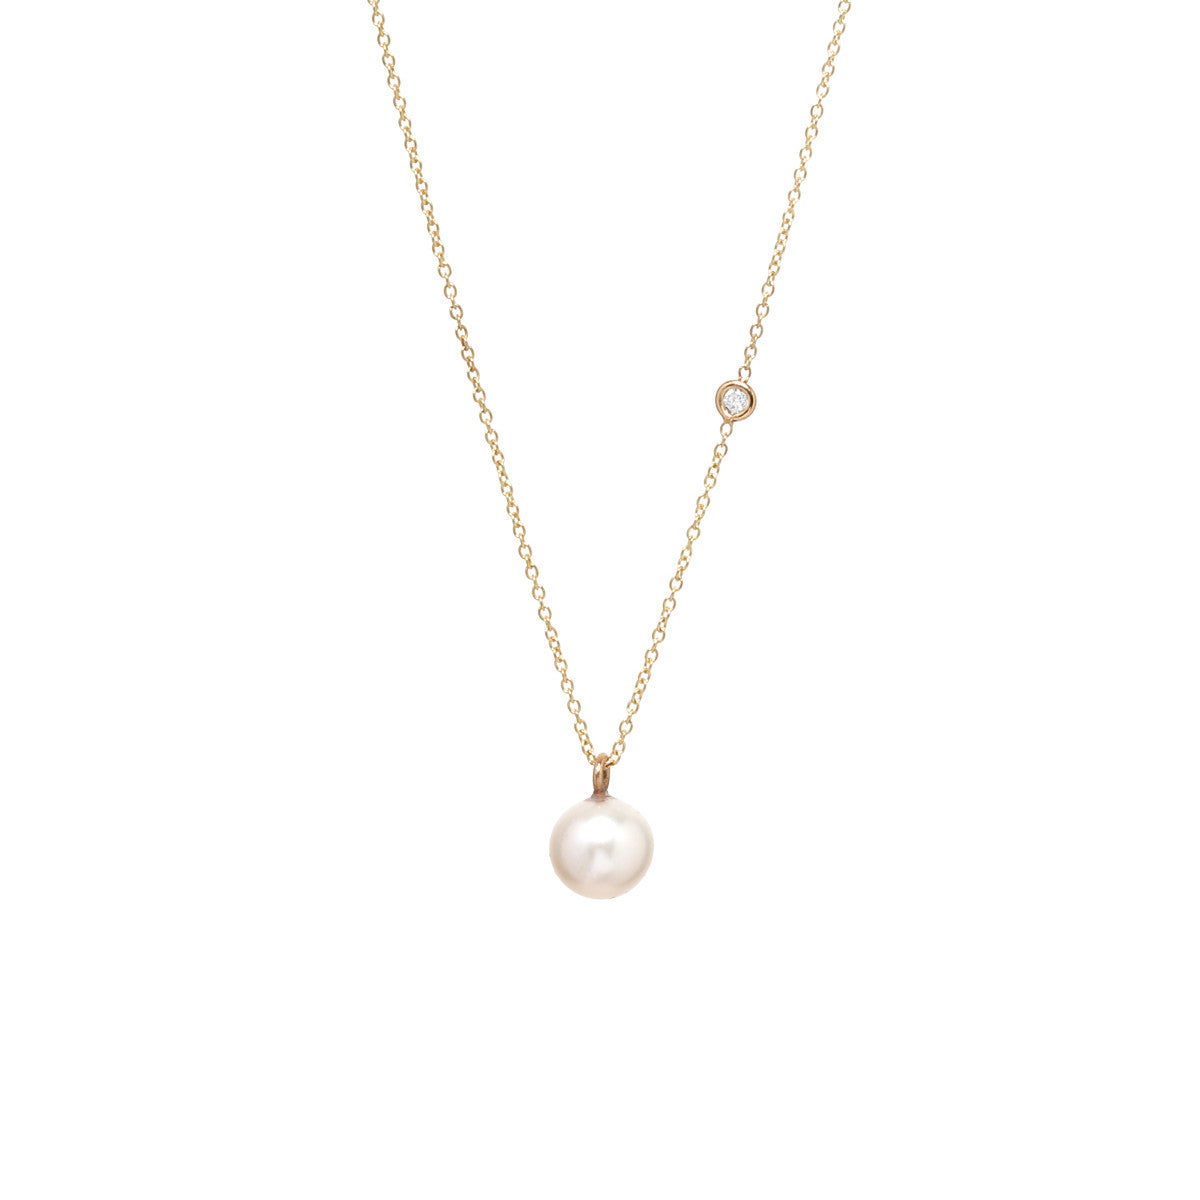 Zoë Chicco 14kt Yellow Gold Large Pearl and Diamond Necklace